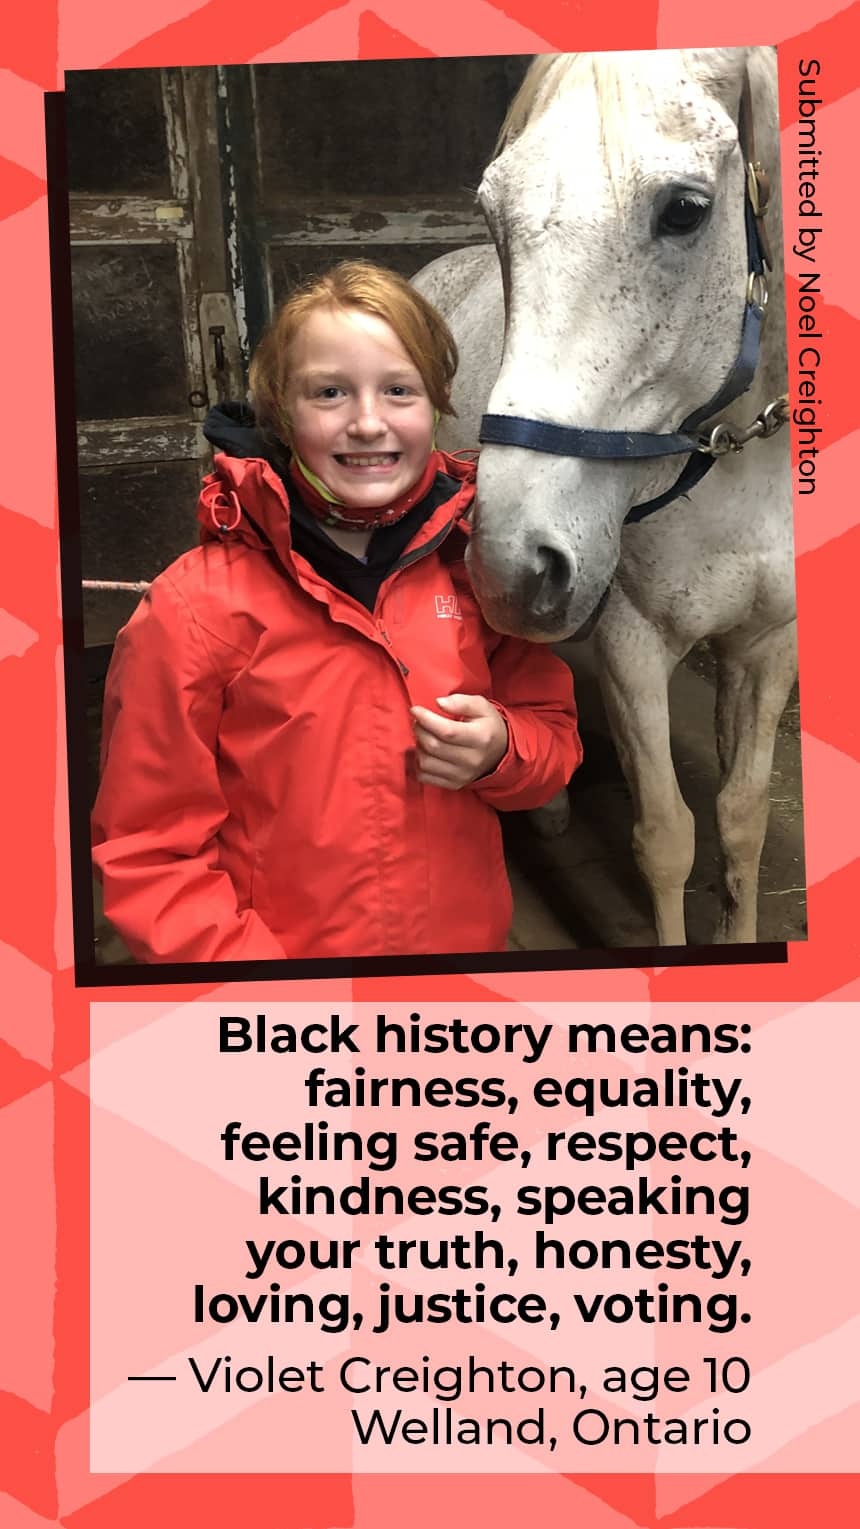 """""""Black history means: fairness, equality, feeling safe, respect, kindness, speaking your truth, honesty, loving, justice, voting."""" Violet Creighton  Age 10 Welland, Ontario"""